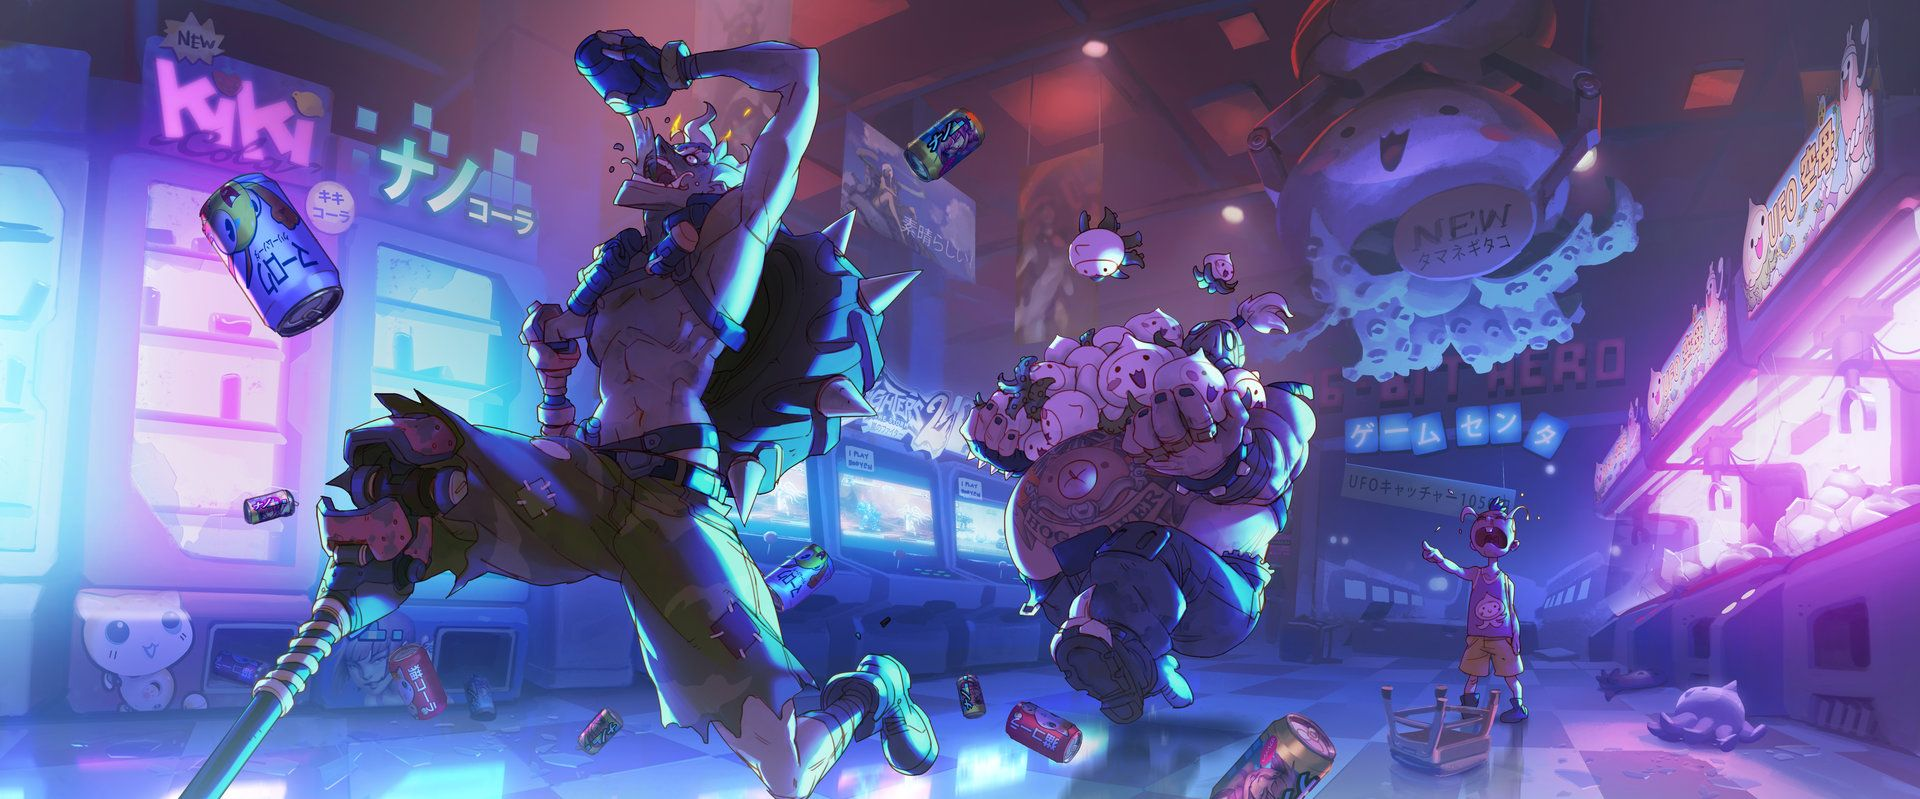 Overwatch A Moment In Crime Junkers Arnold Tsang Overwatch Wallpapers Overwatch Junkrat And Roadhog